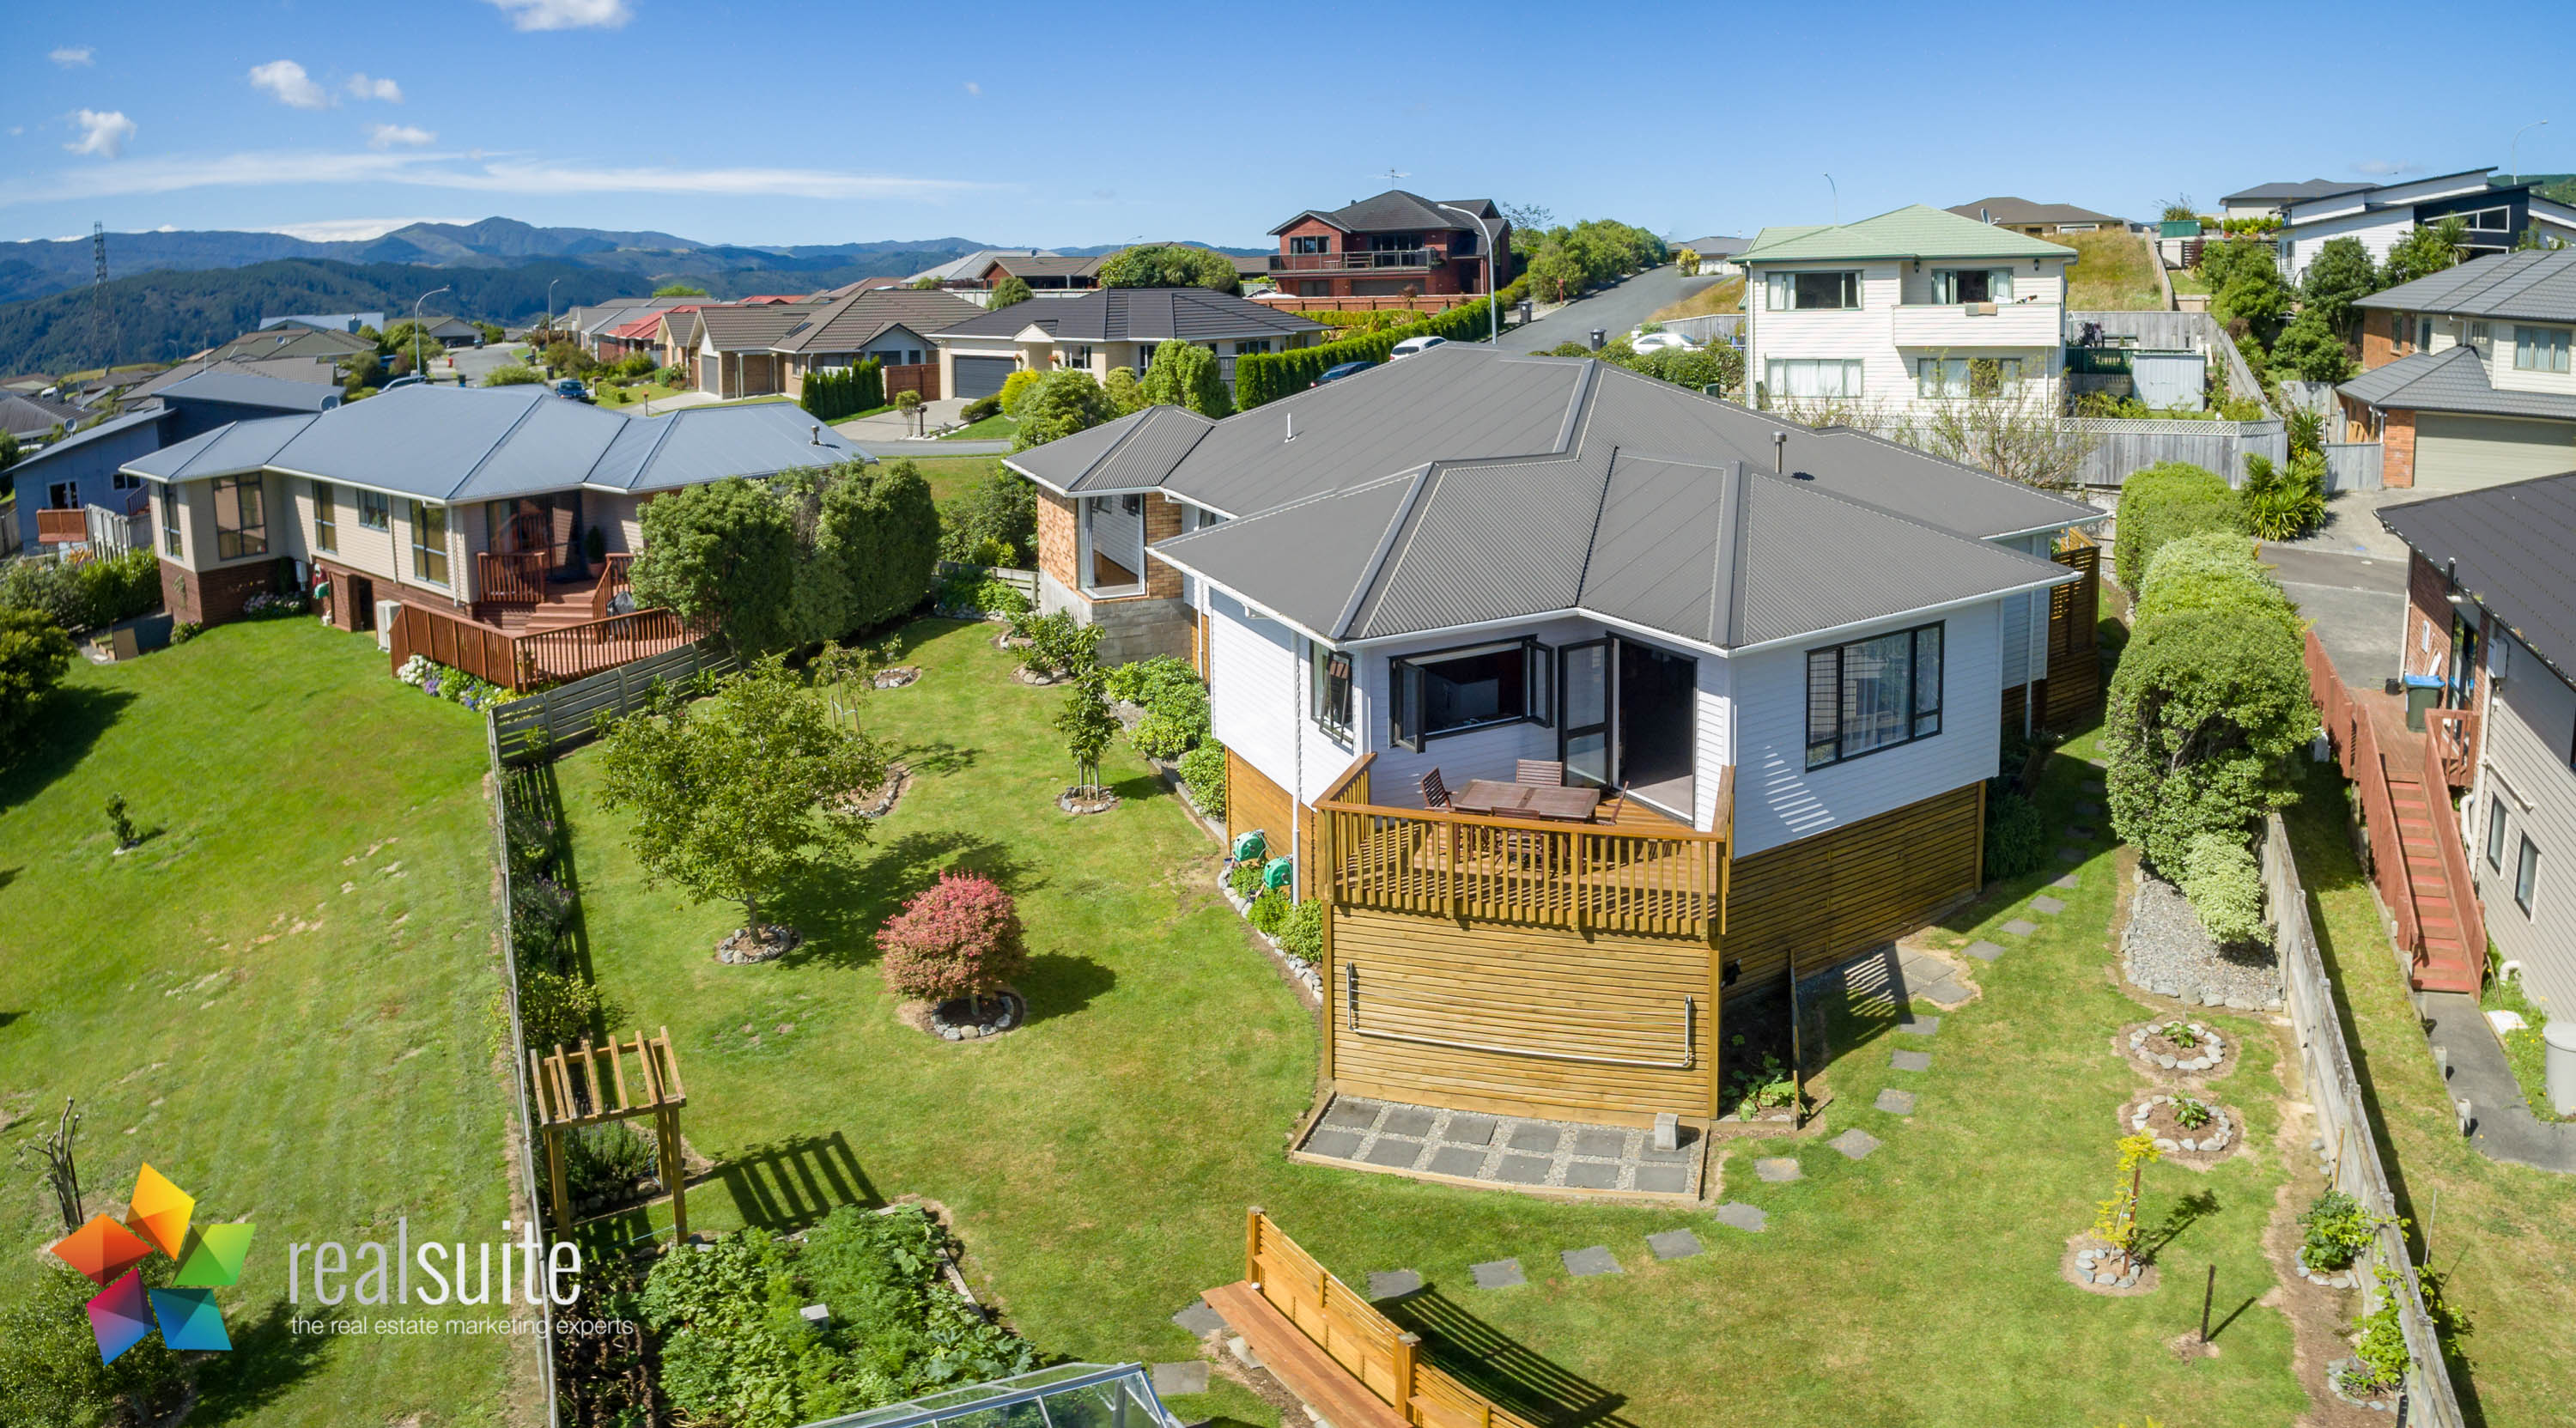 9 McEwen Crescent, Riverstone Terraces Aerial 0425-Pano